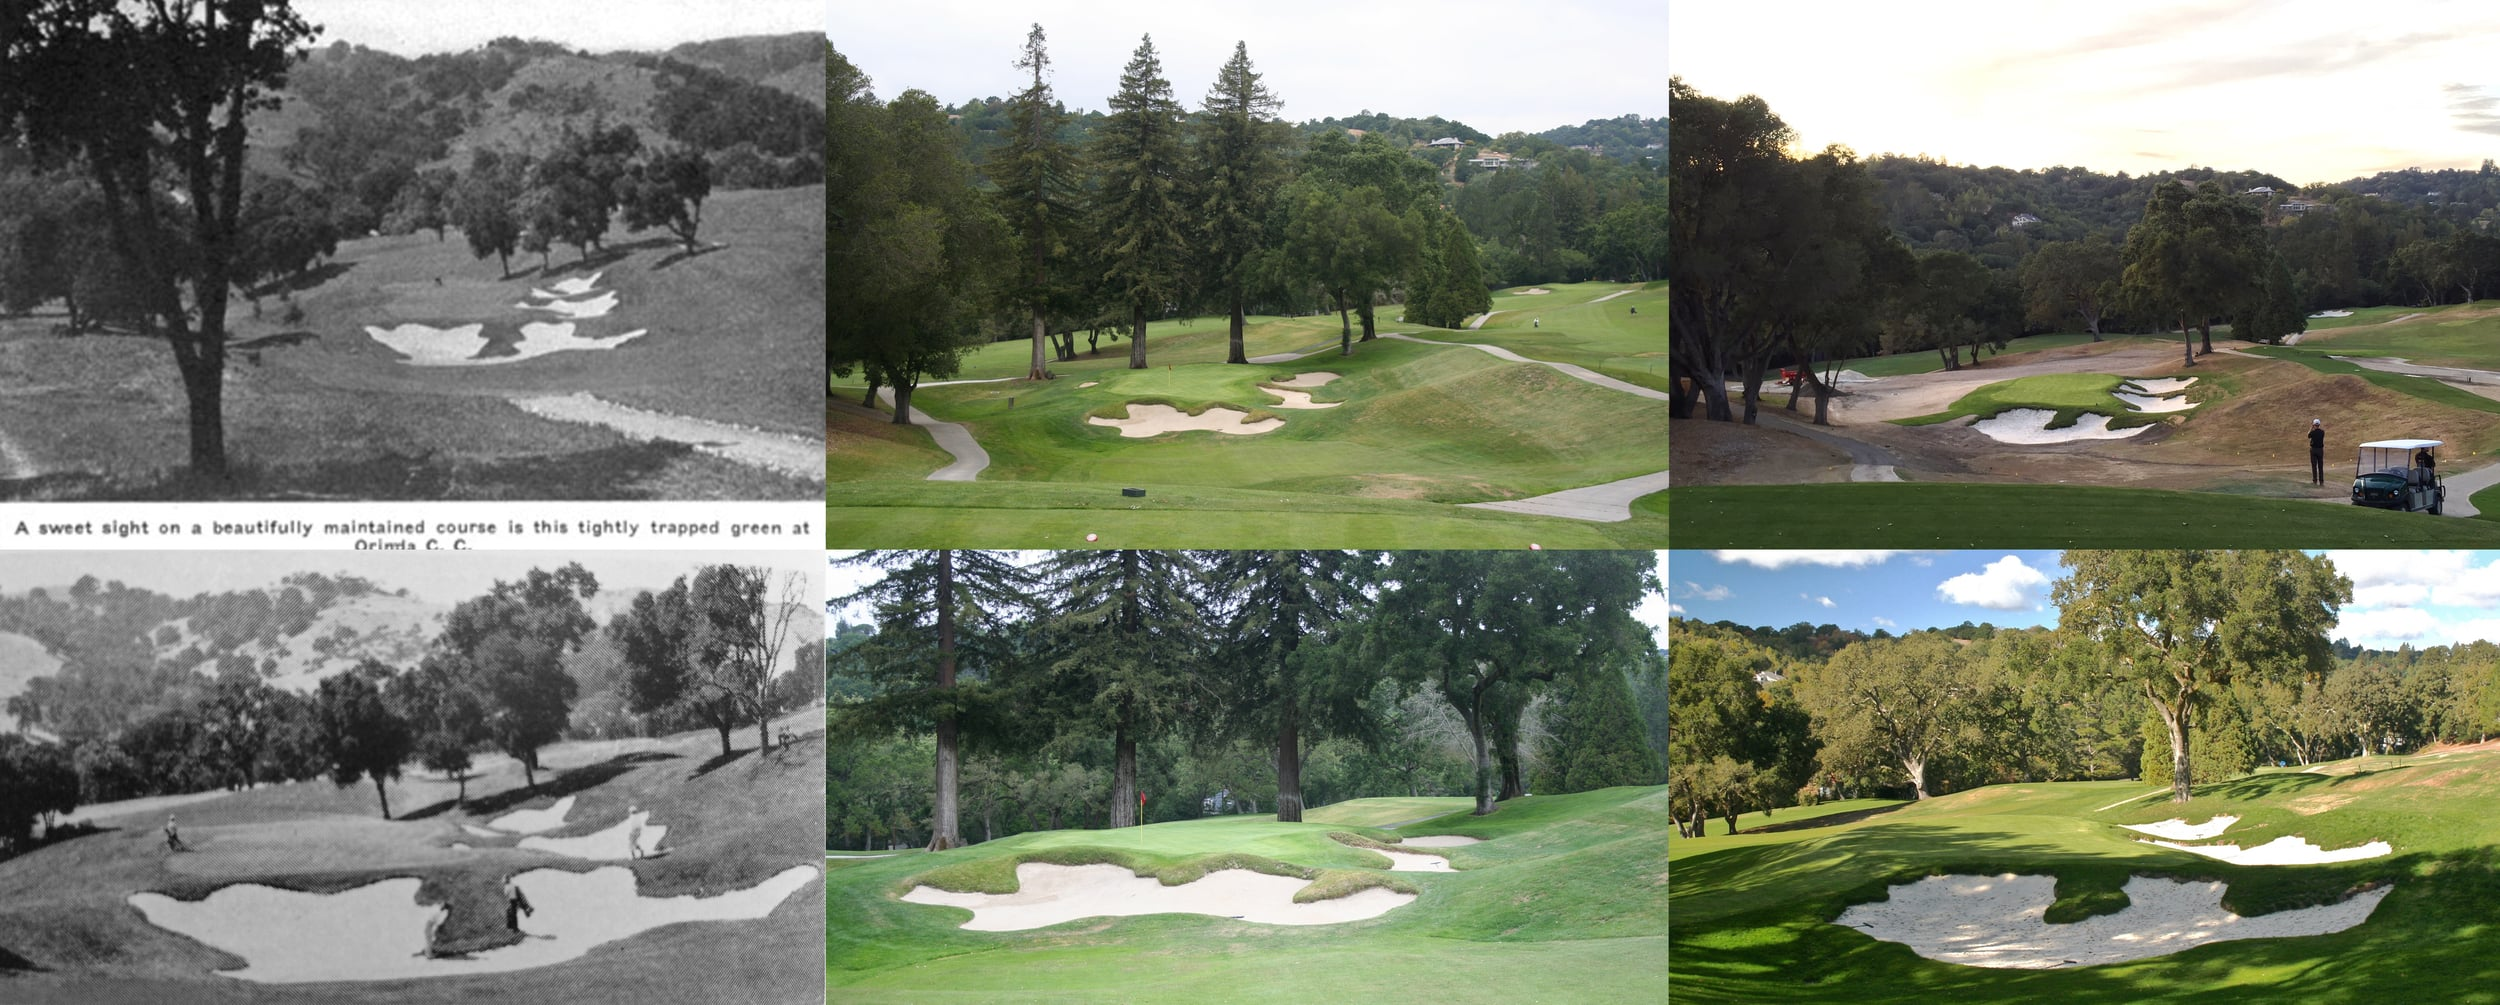 Original, before, and after of the 8th hole at Orinda